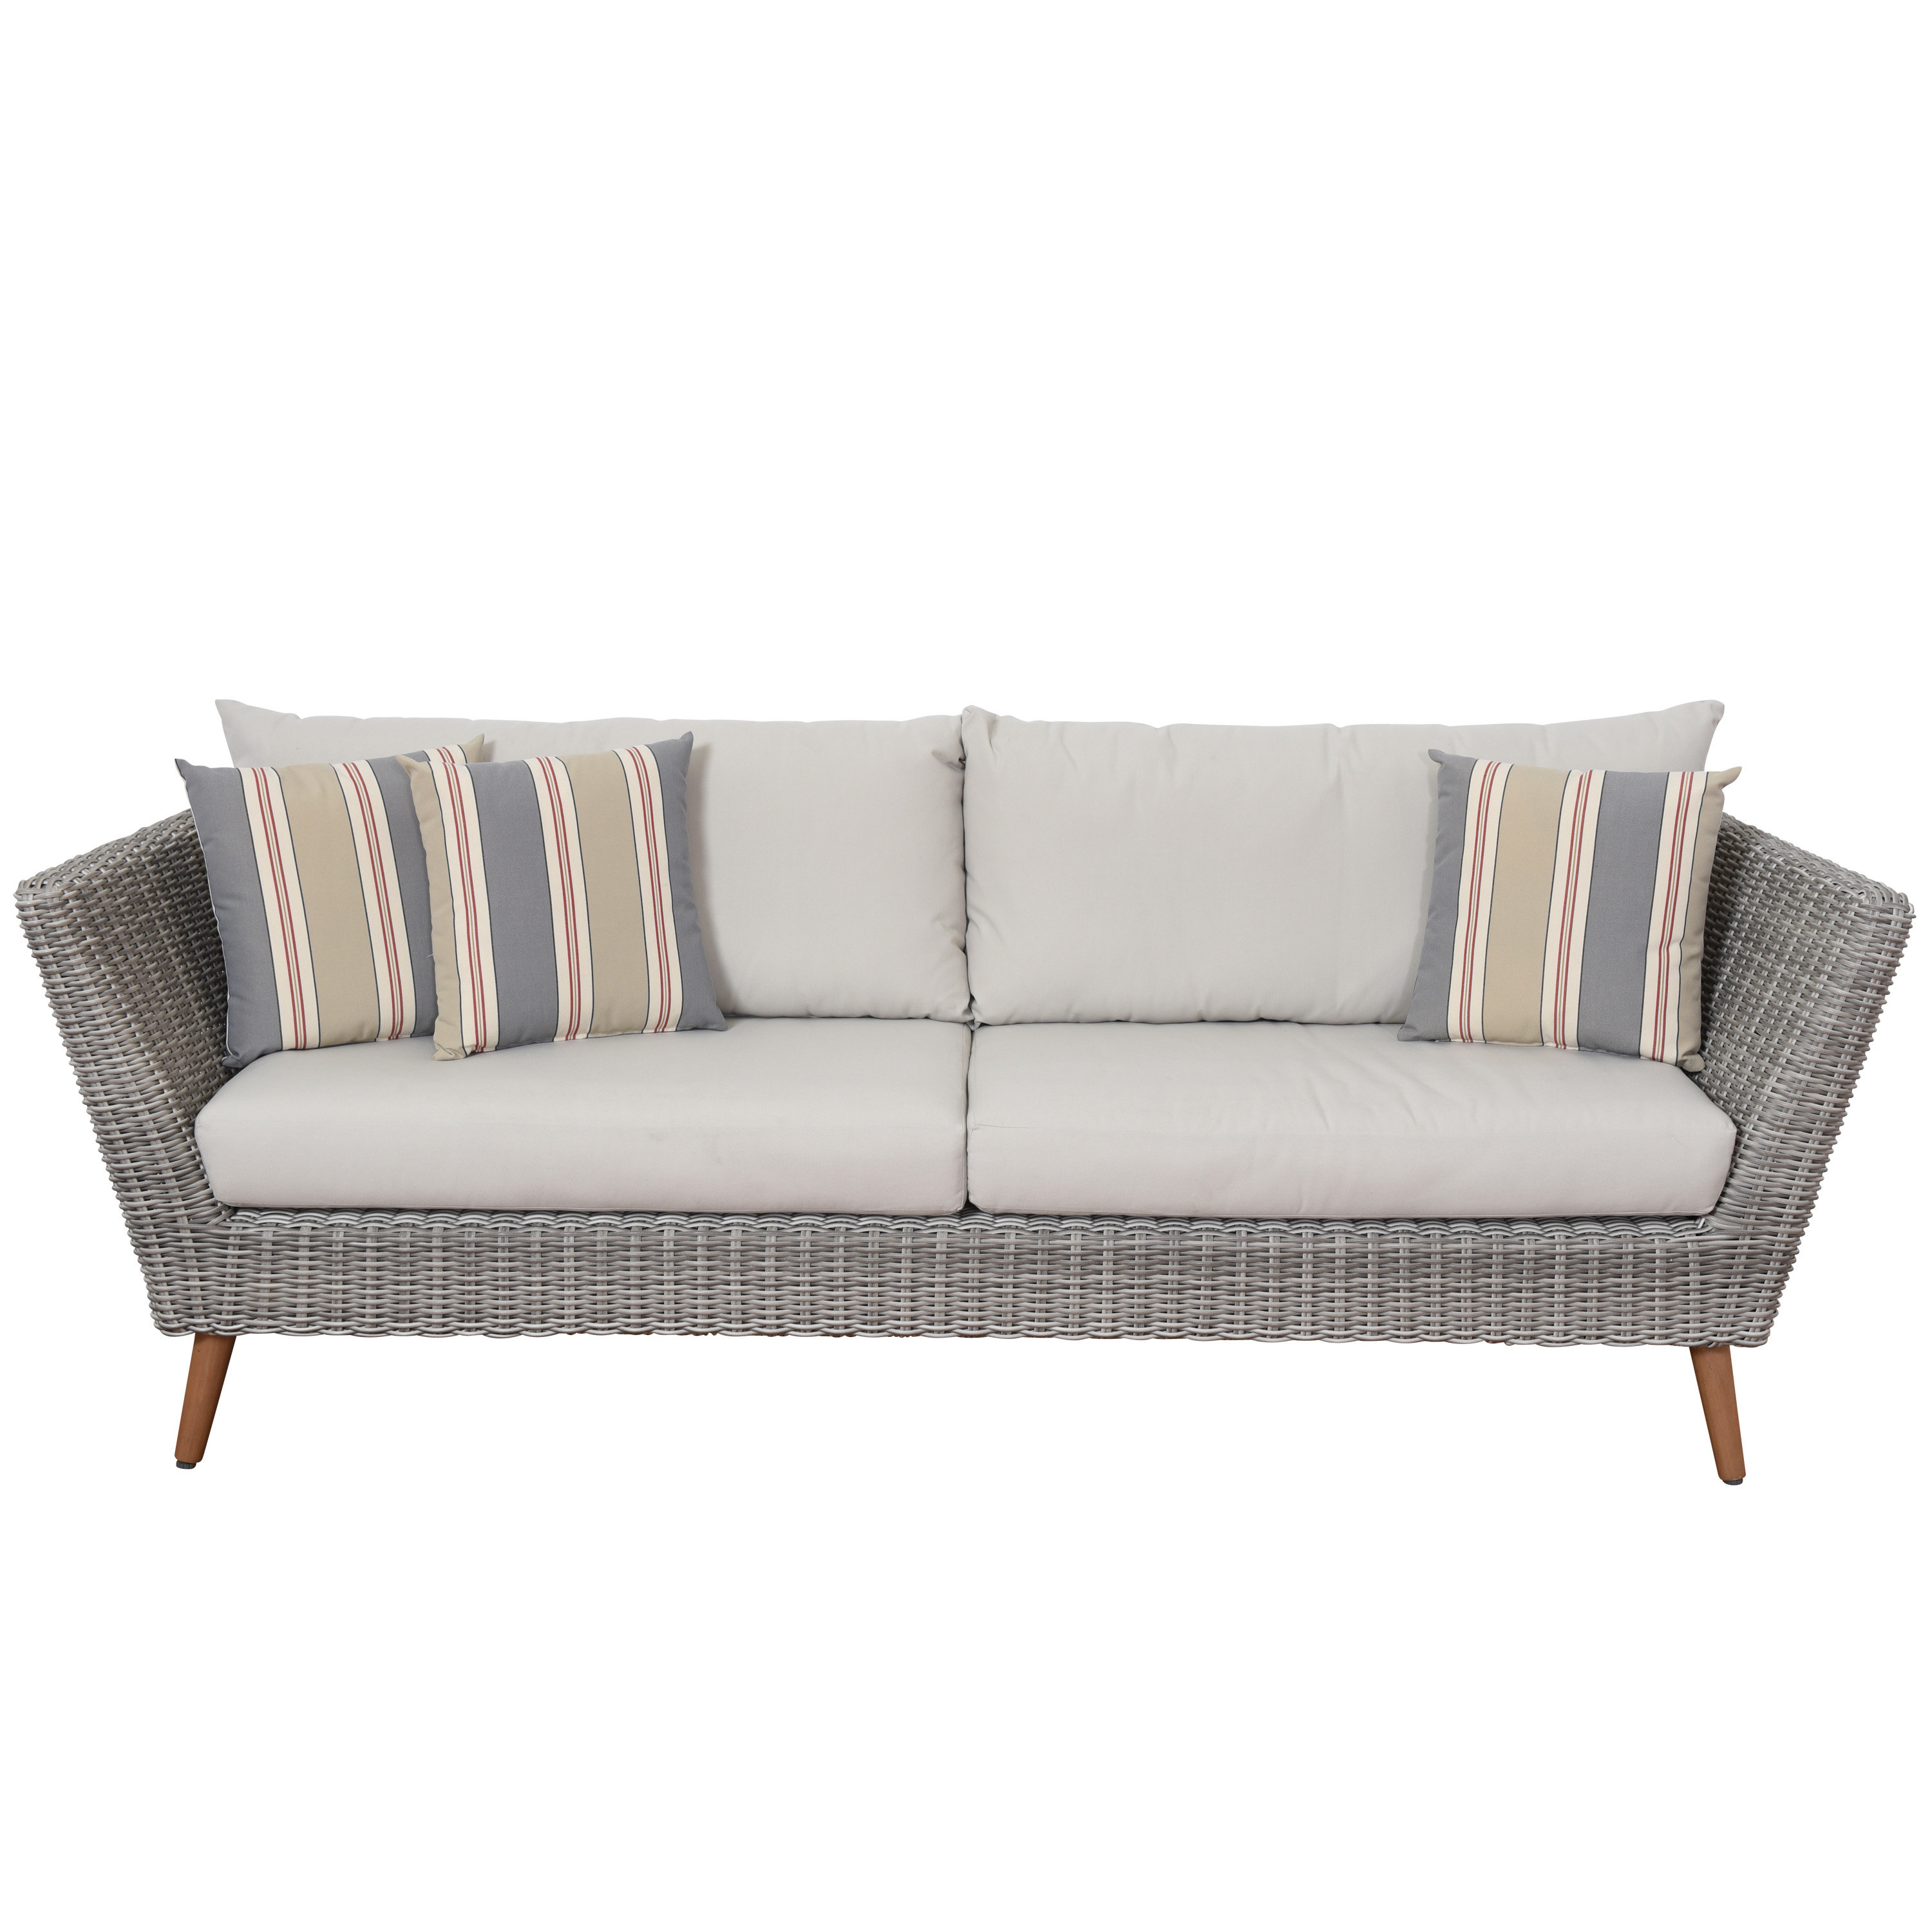 Current Laguna Outdoor Sofas With Cushions With Regard To Newbury Patio Sofa With Cushions (View 1 of 20)